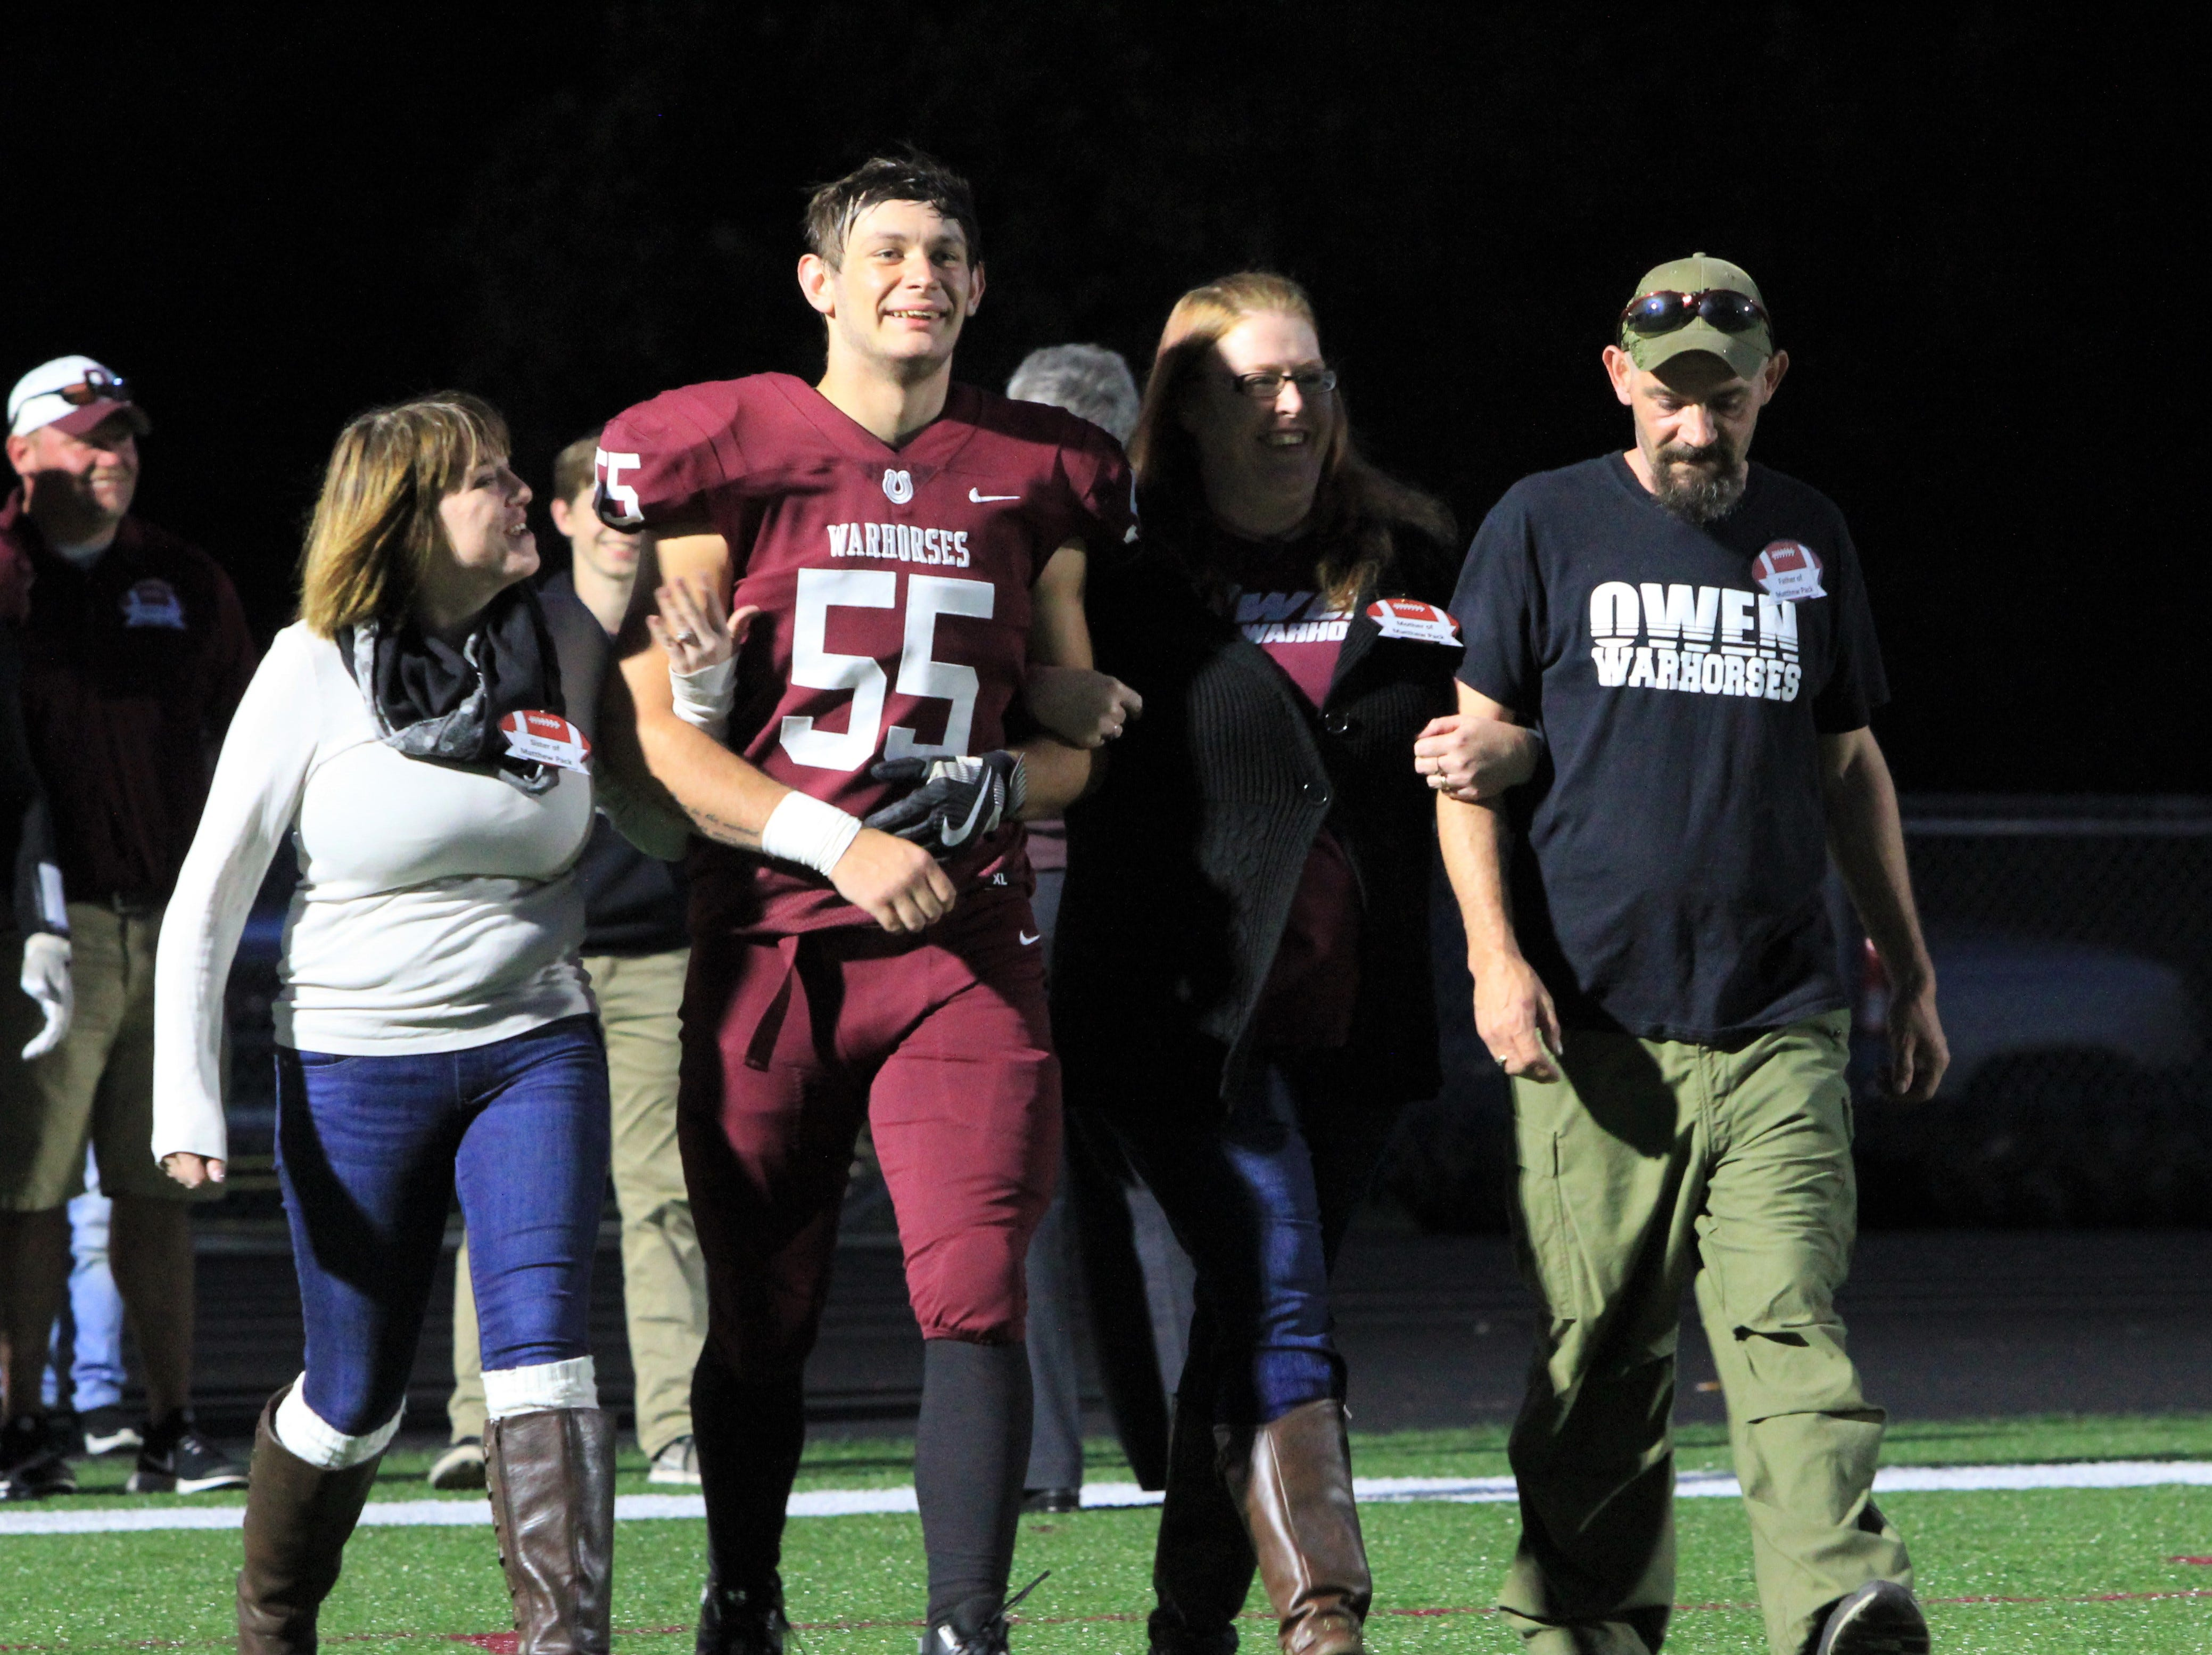 The Owen Warhorses improved to 3-5 on the season and 2-1 in the Western Highlands Conference on senior night at Warhorse Stadium, where Hall of Fame inductees Yogi McElrath, Bobby Ferguson and Kenny Ford were introduced at halftime.